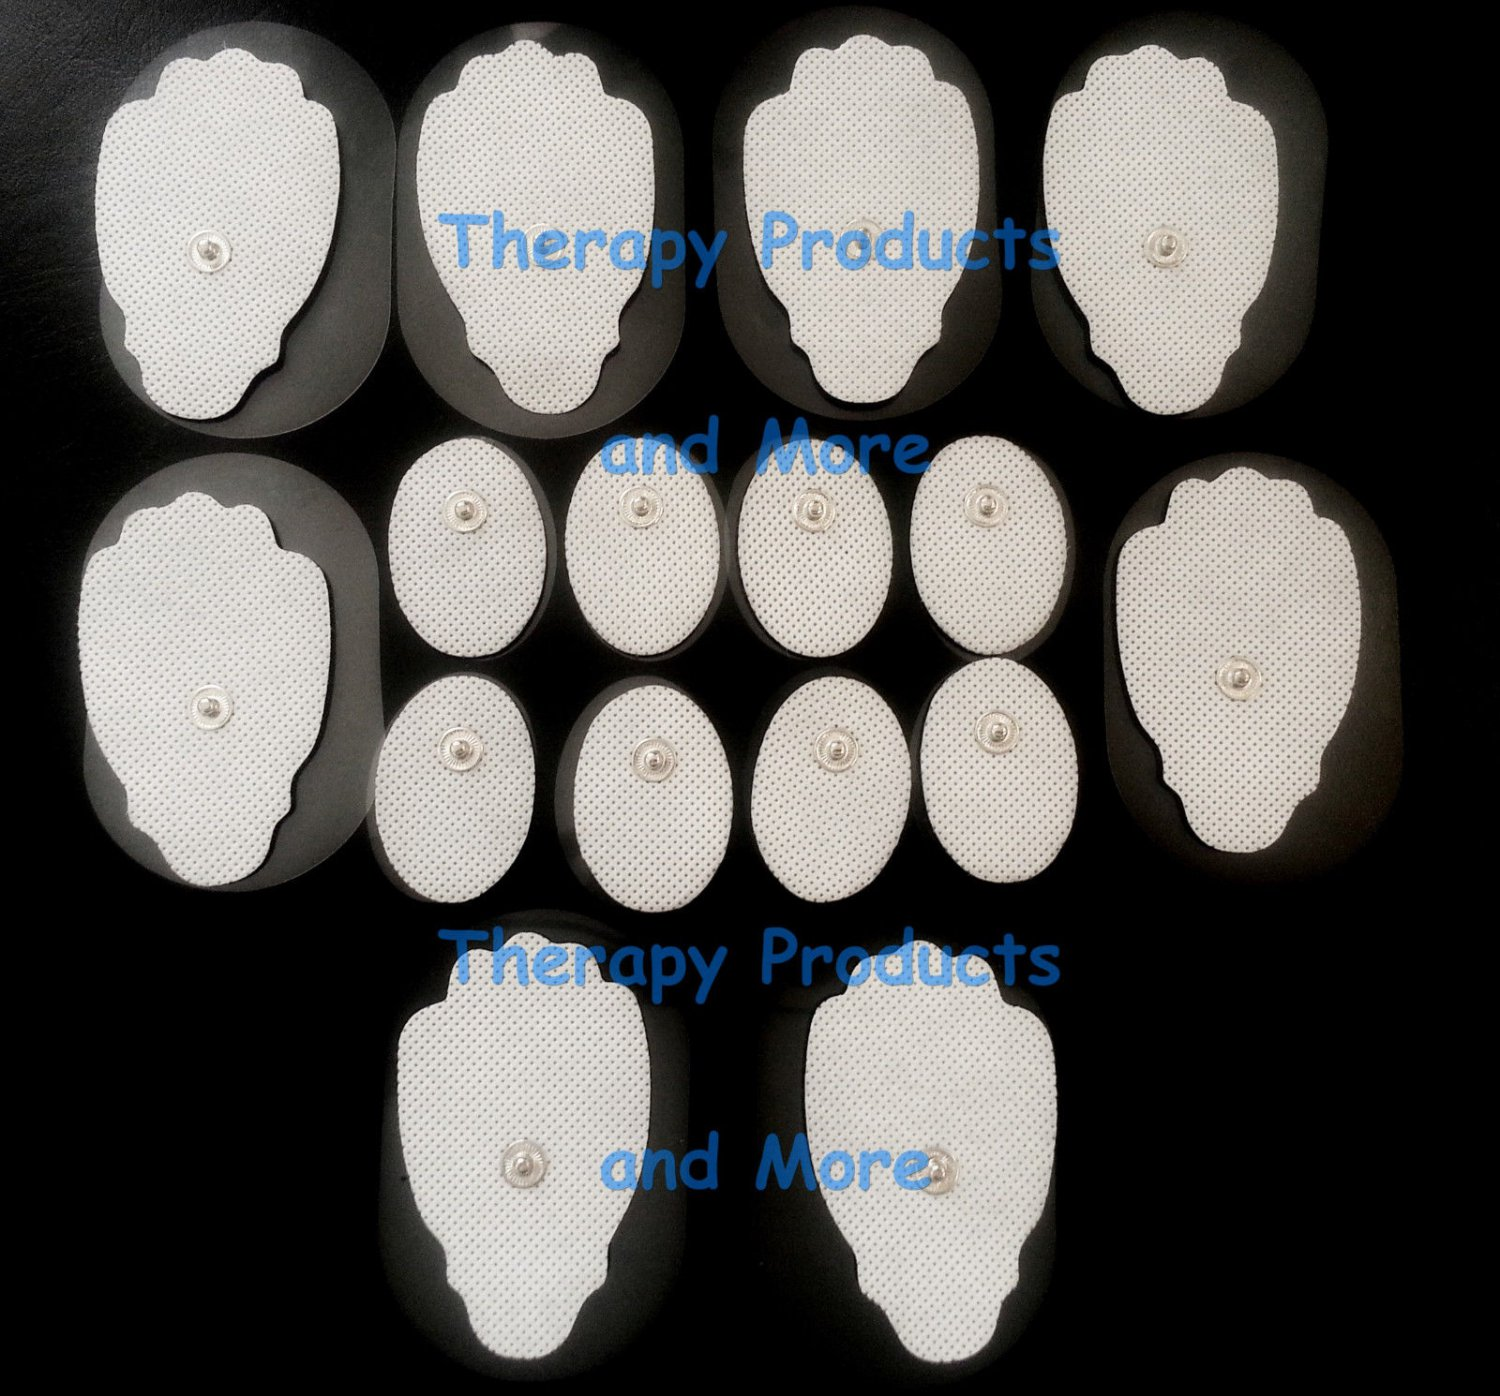 REPLACEMENT ELECTRODE PADS COMBO (8 LG, 8 SM OVAL) FOR PINOOK Digital Massagers